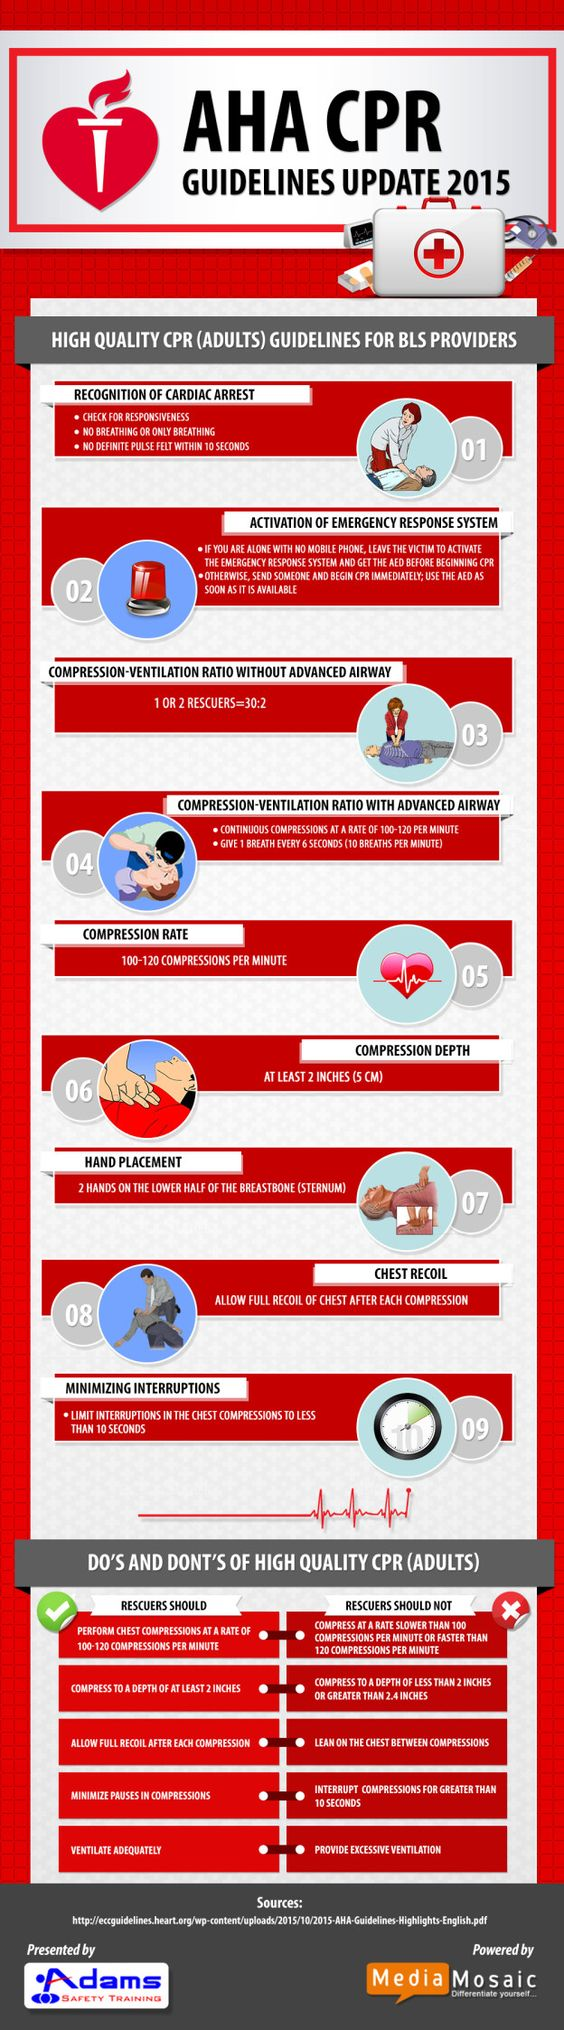 Best 25 cpr training ideas on pinterest cardiopulmonary best 25 cpr training ideas on pinterest cardiopulmonary resuscitation baby safety and first aid cpr xflitez Gallery